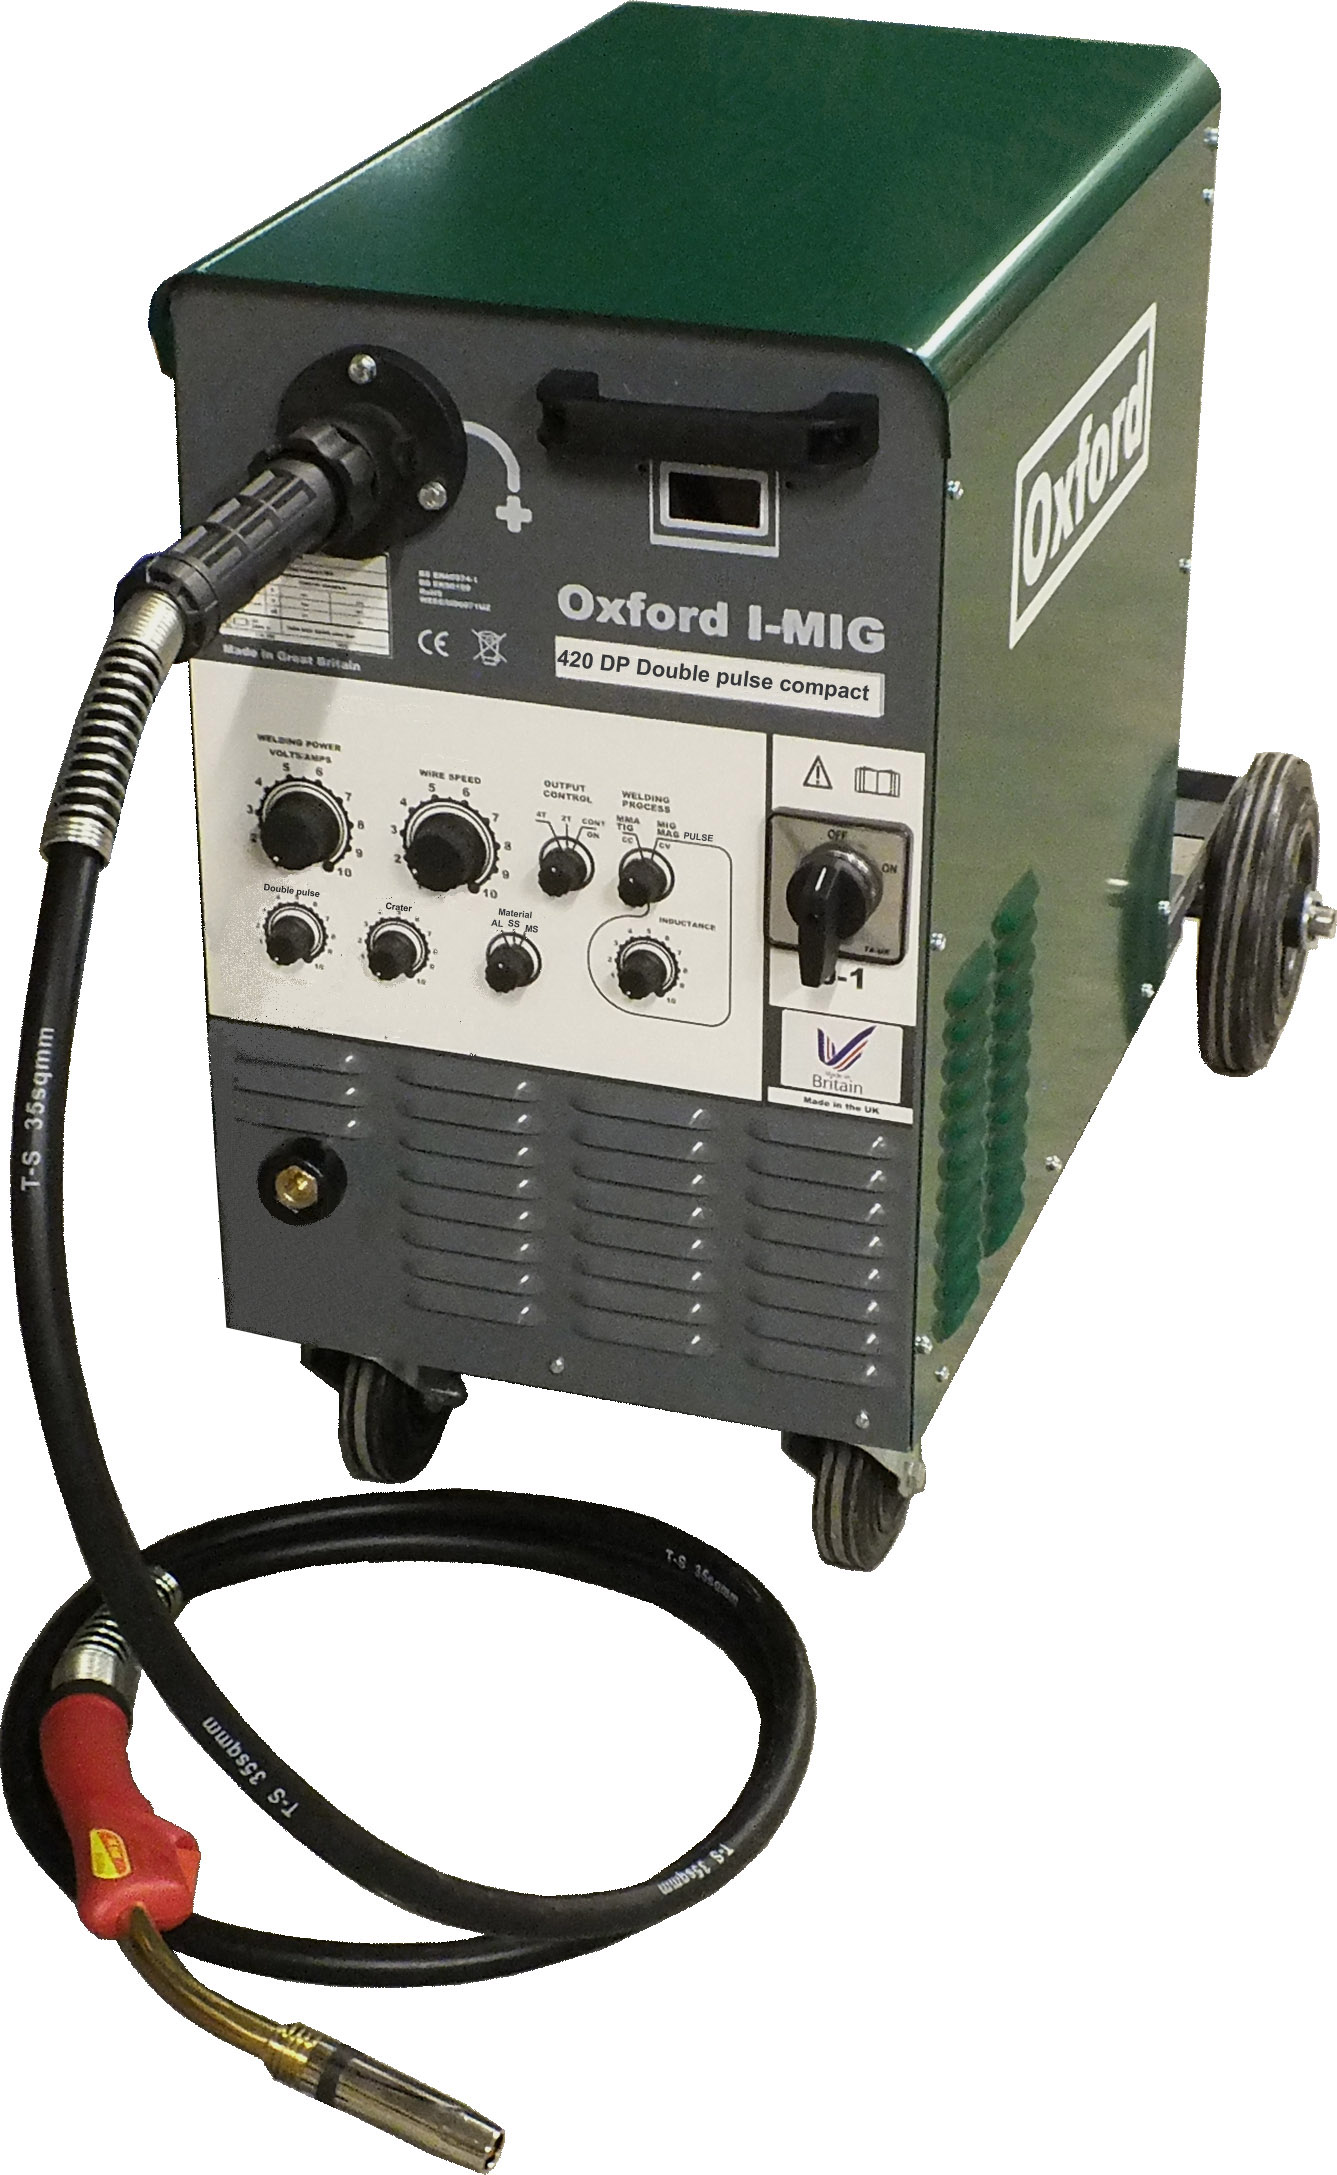 Oxford I-MIG 330 DP dual voltage